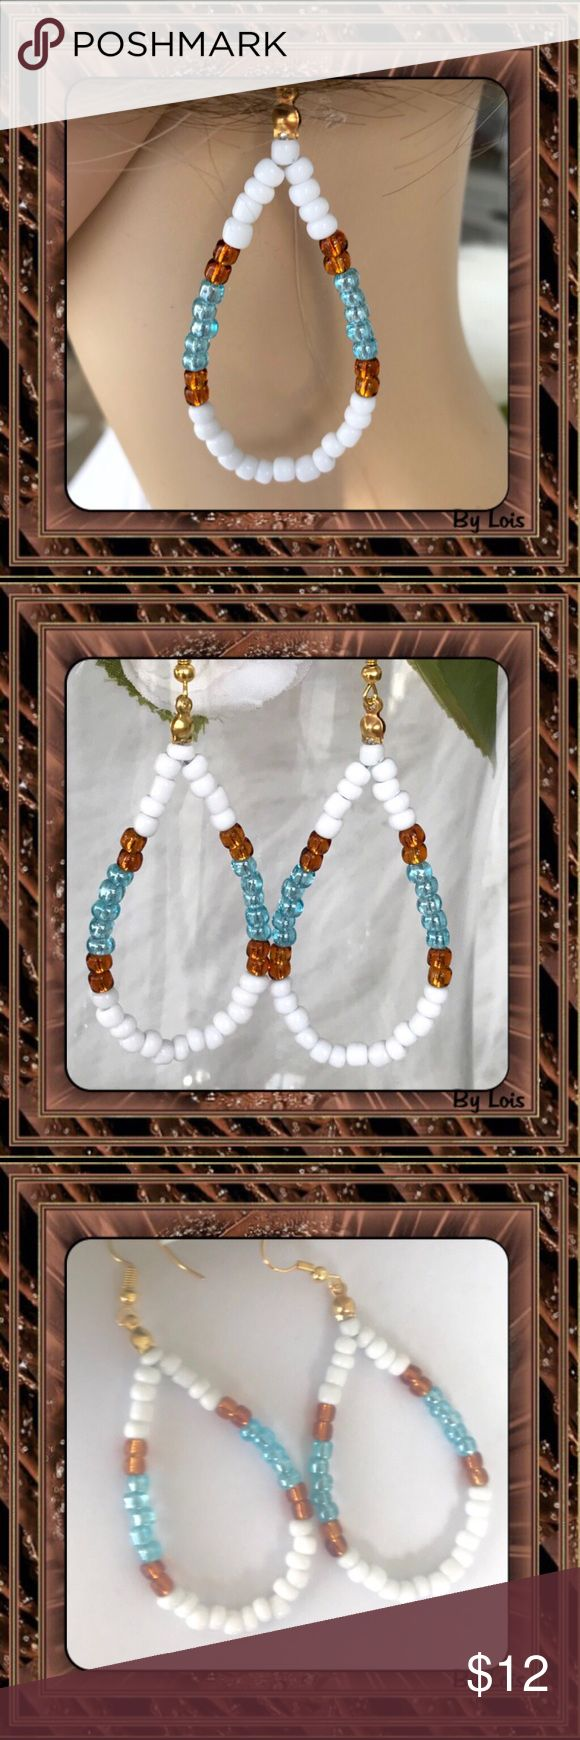 HANDMADE NATIVE AMERICAN EARRINGS Handcrafted: This pair of hoop earrings were made with large seed beads. The white are a solid and the copper and turquoise have a pearl like luster. The two colors really highlight the white which stands out visually giving it a crisp look. Light to wear and very noticeable. Fashion Flair Jewelry Earrings